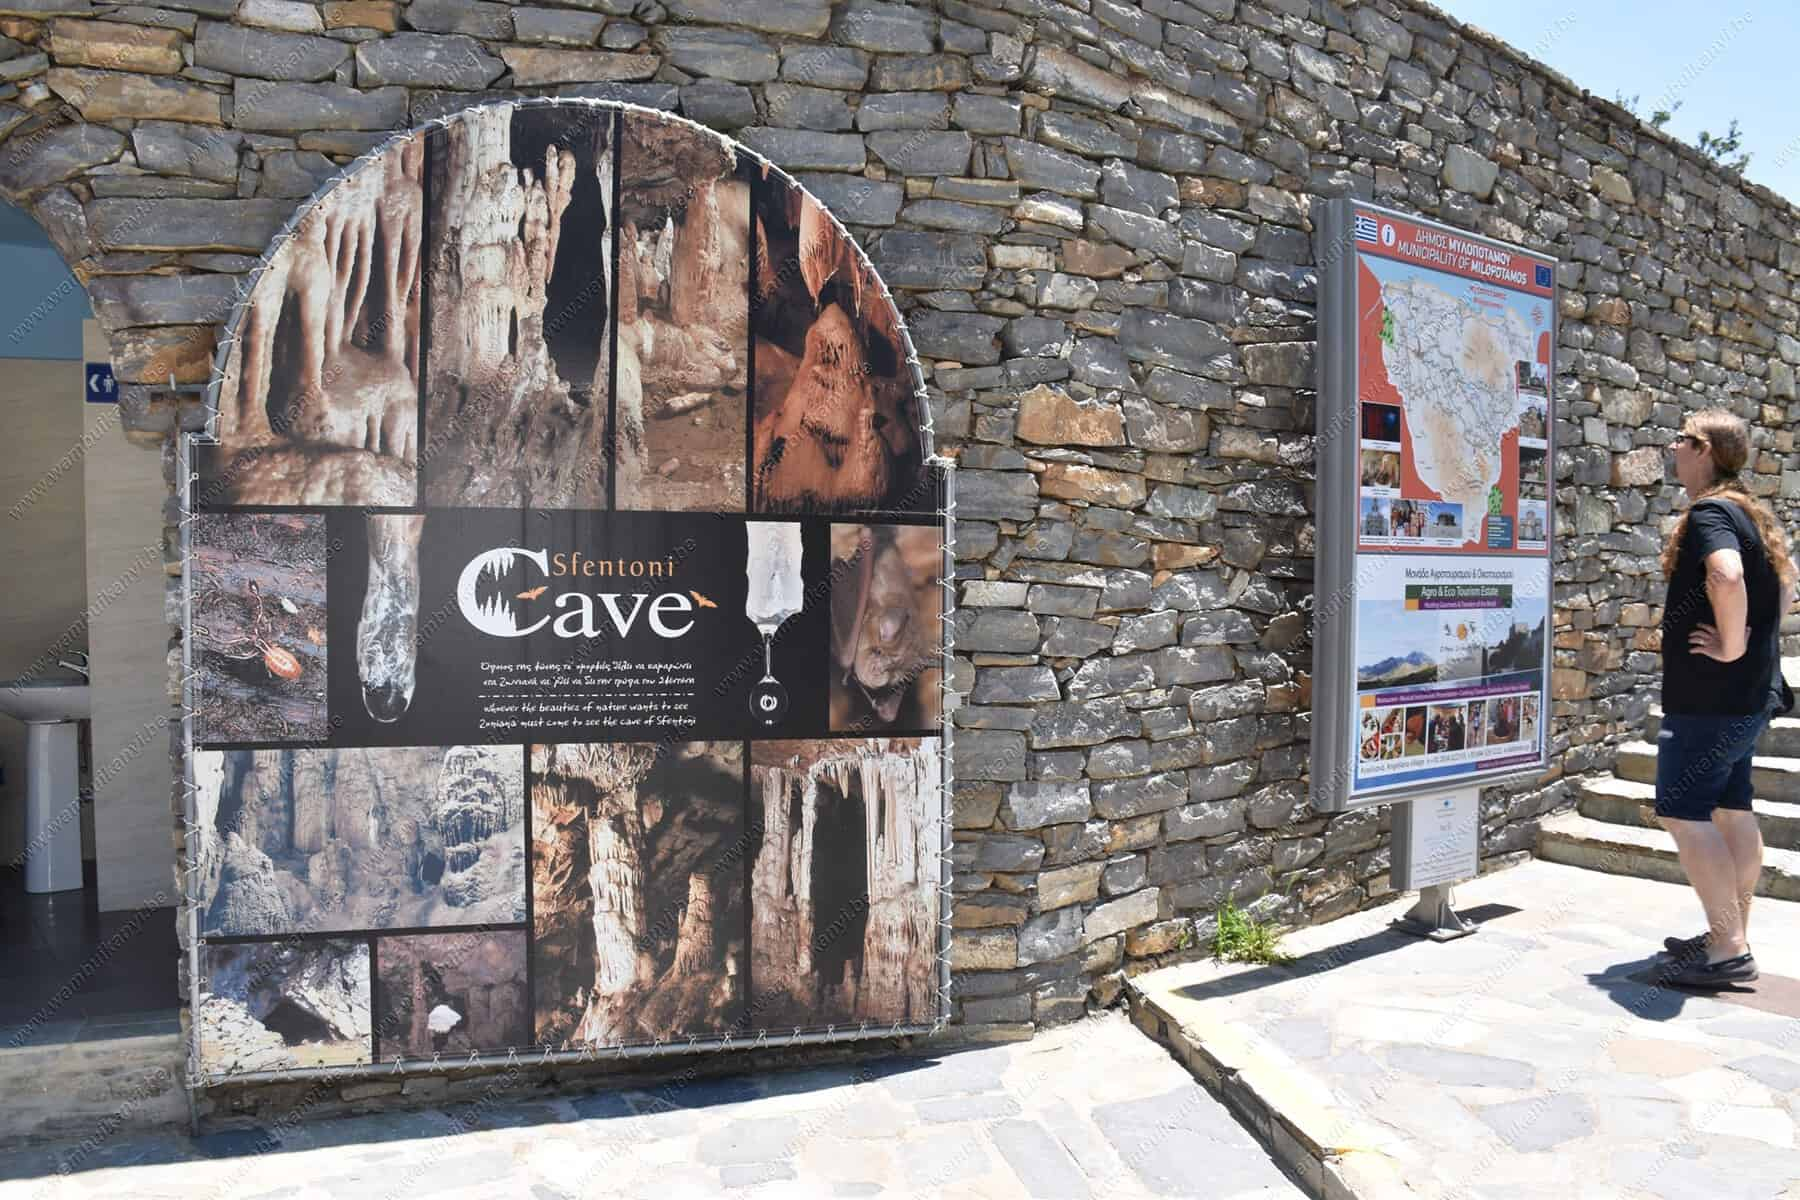 The Experience From Sfentoni Cave Crete Island